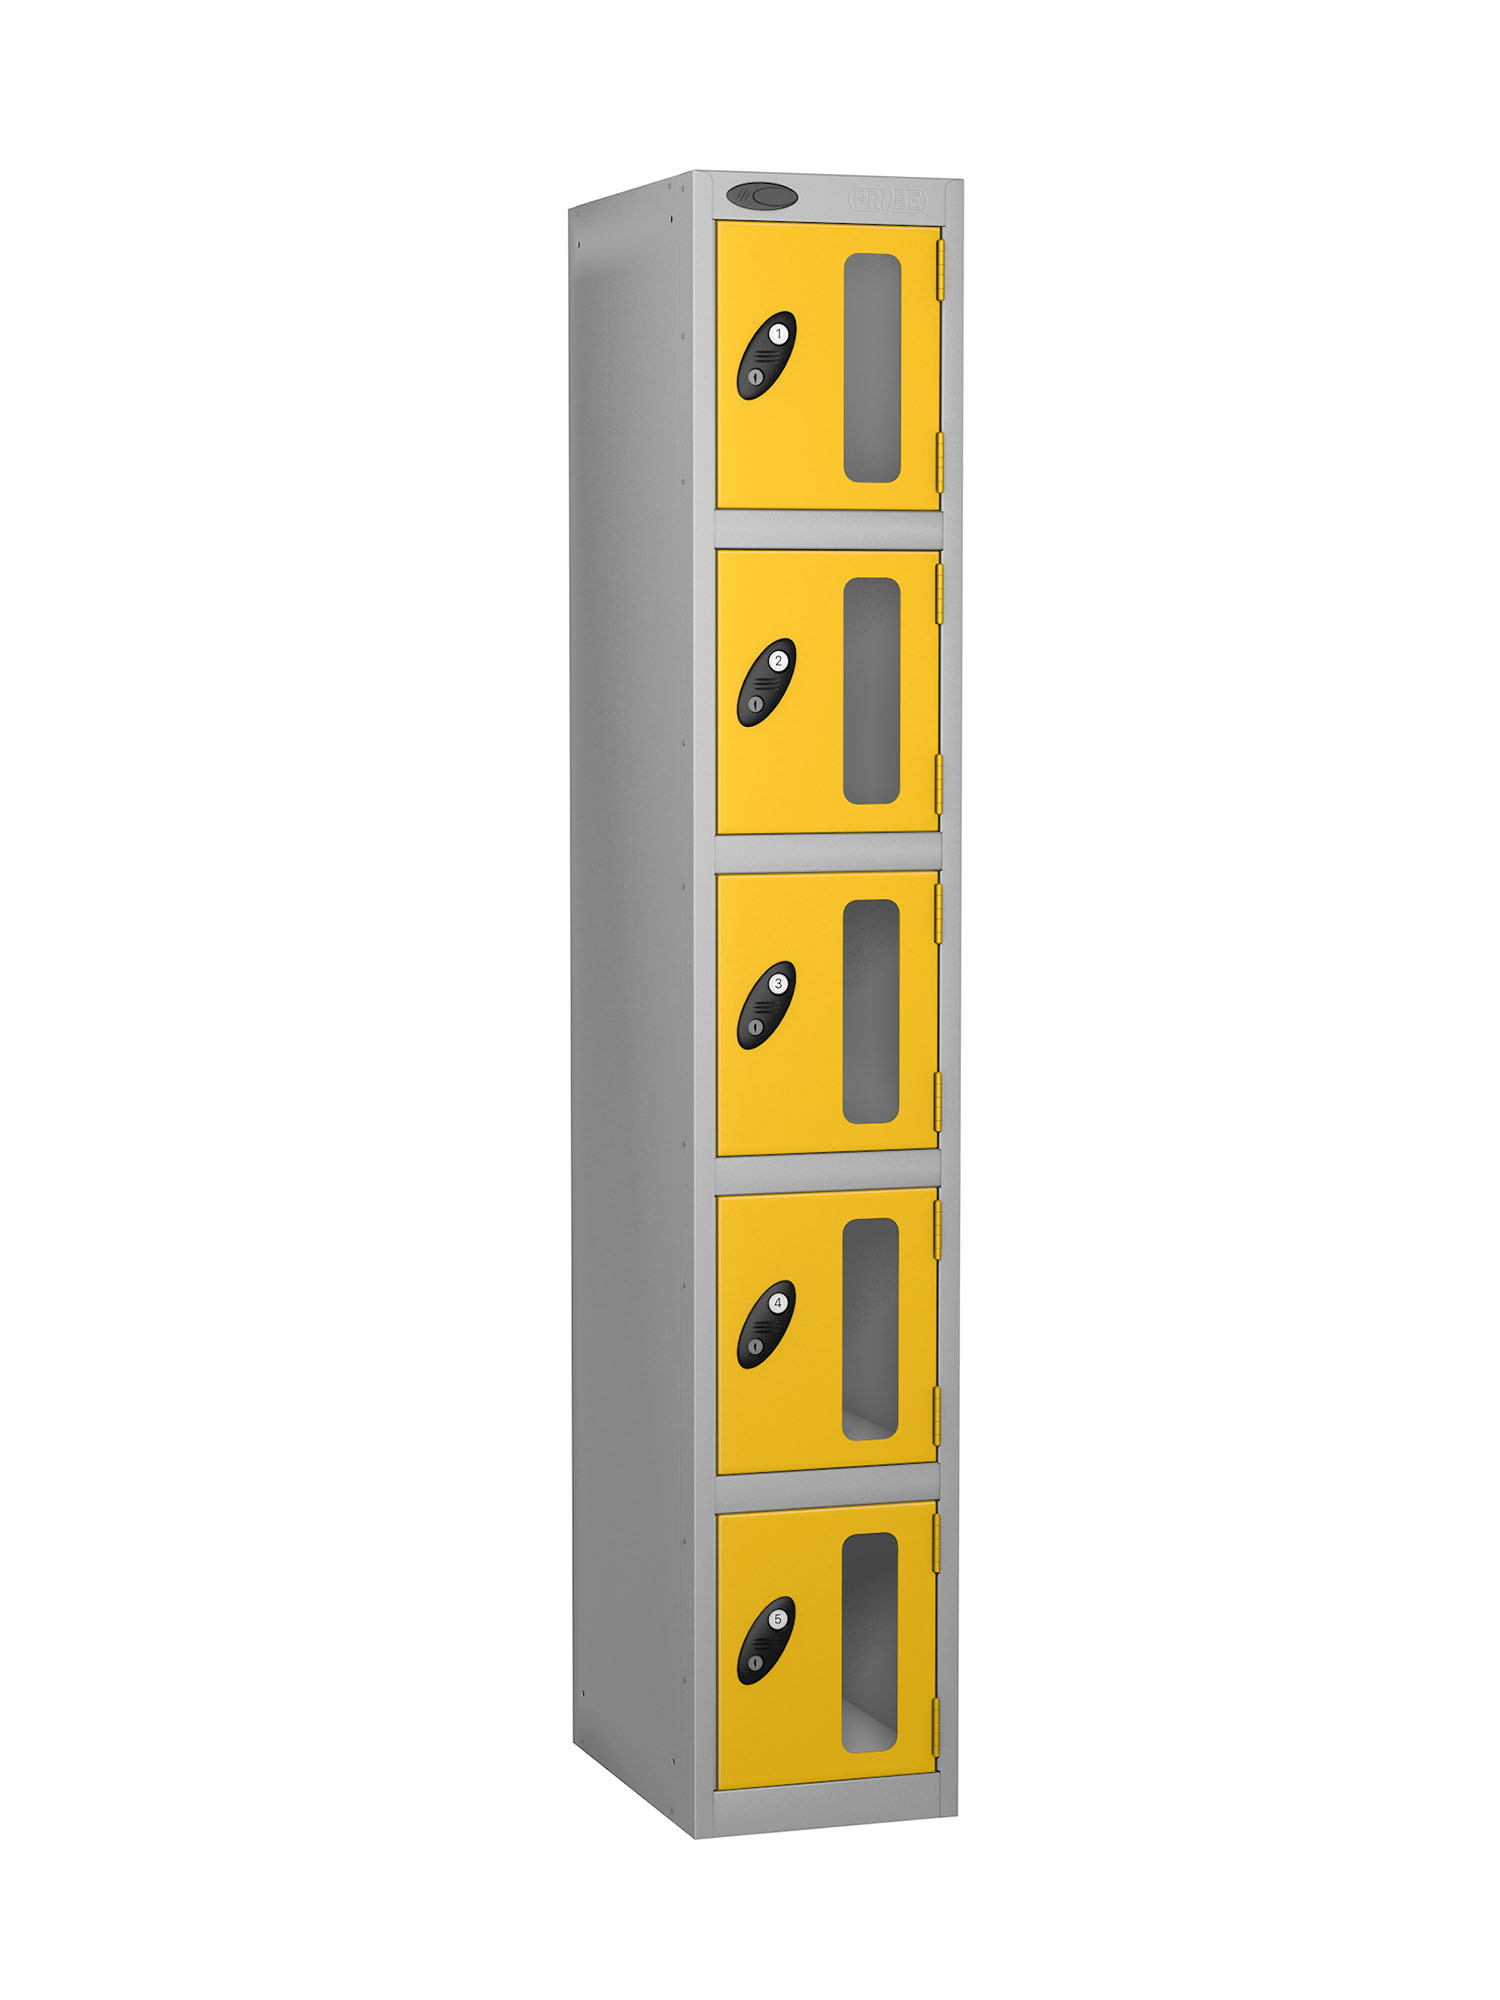 Probe 5 doors vision panel anti-stock theft locker yellow